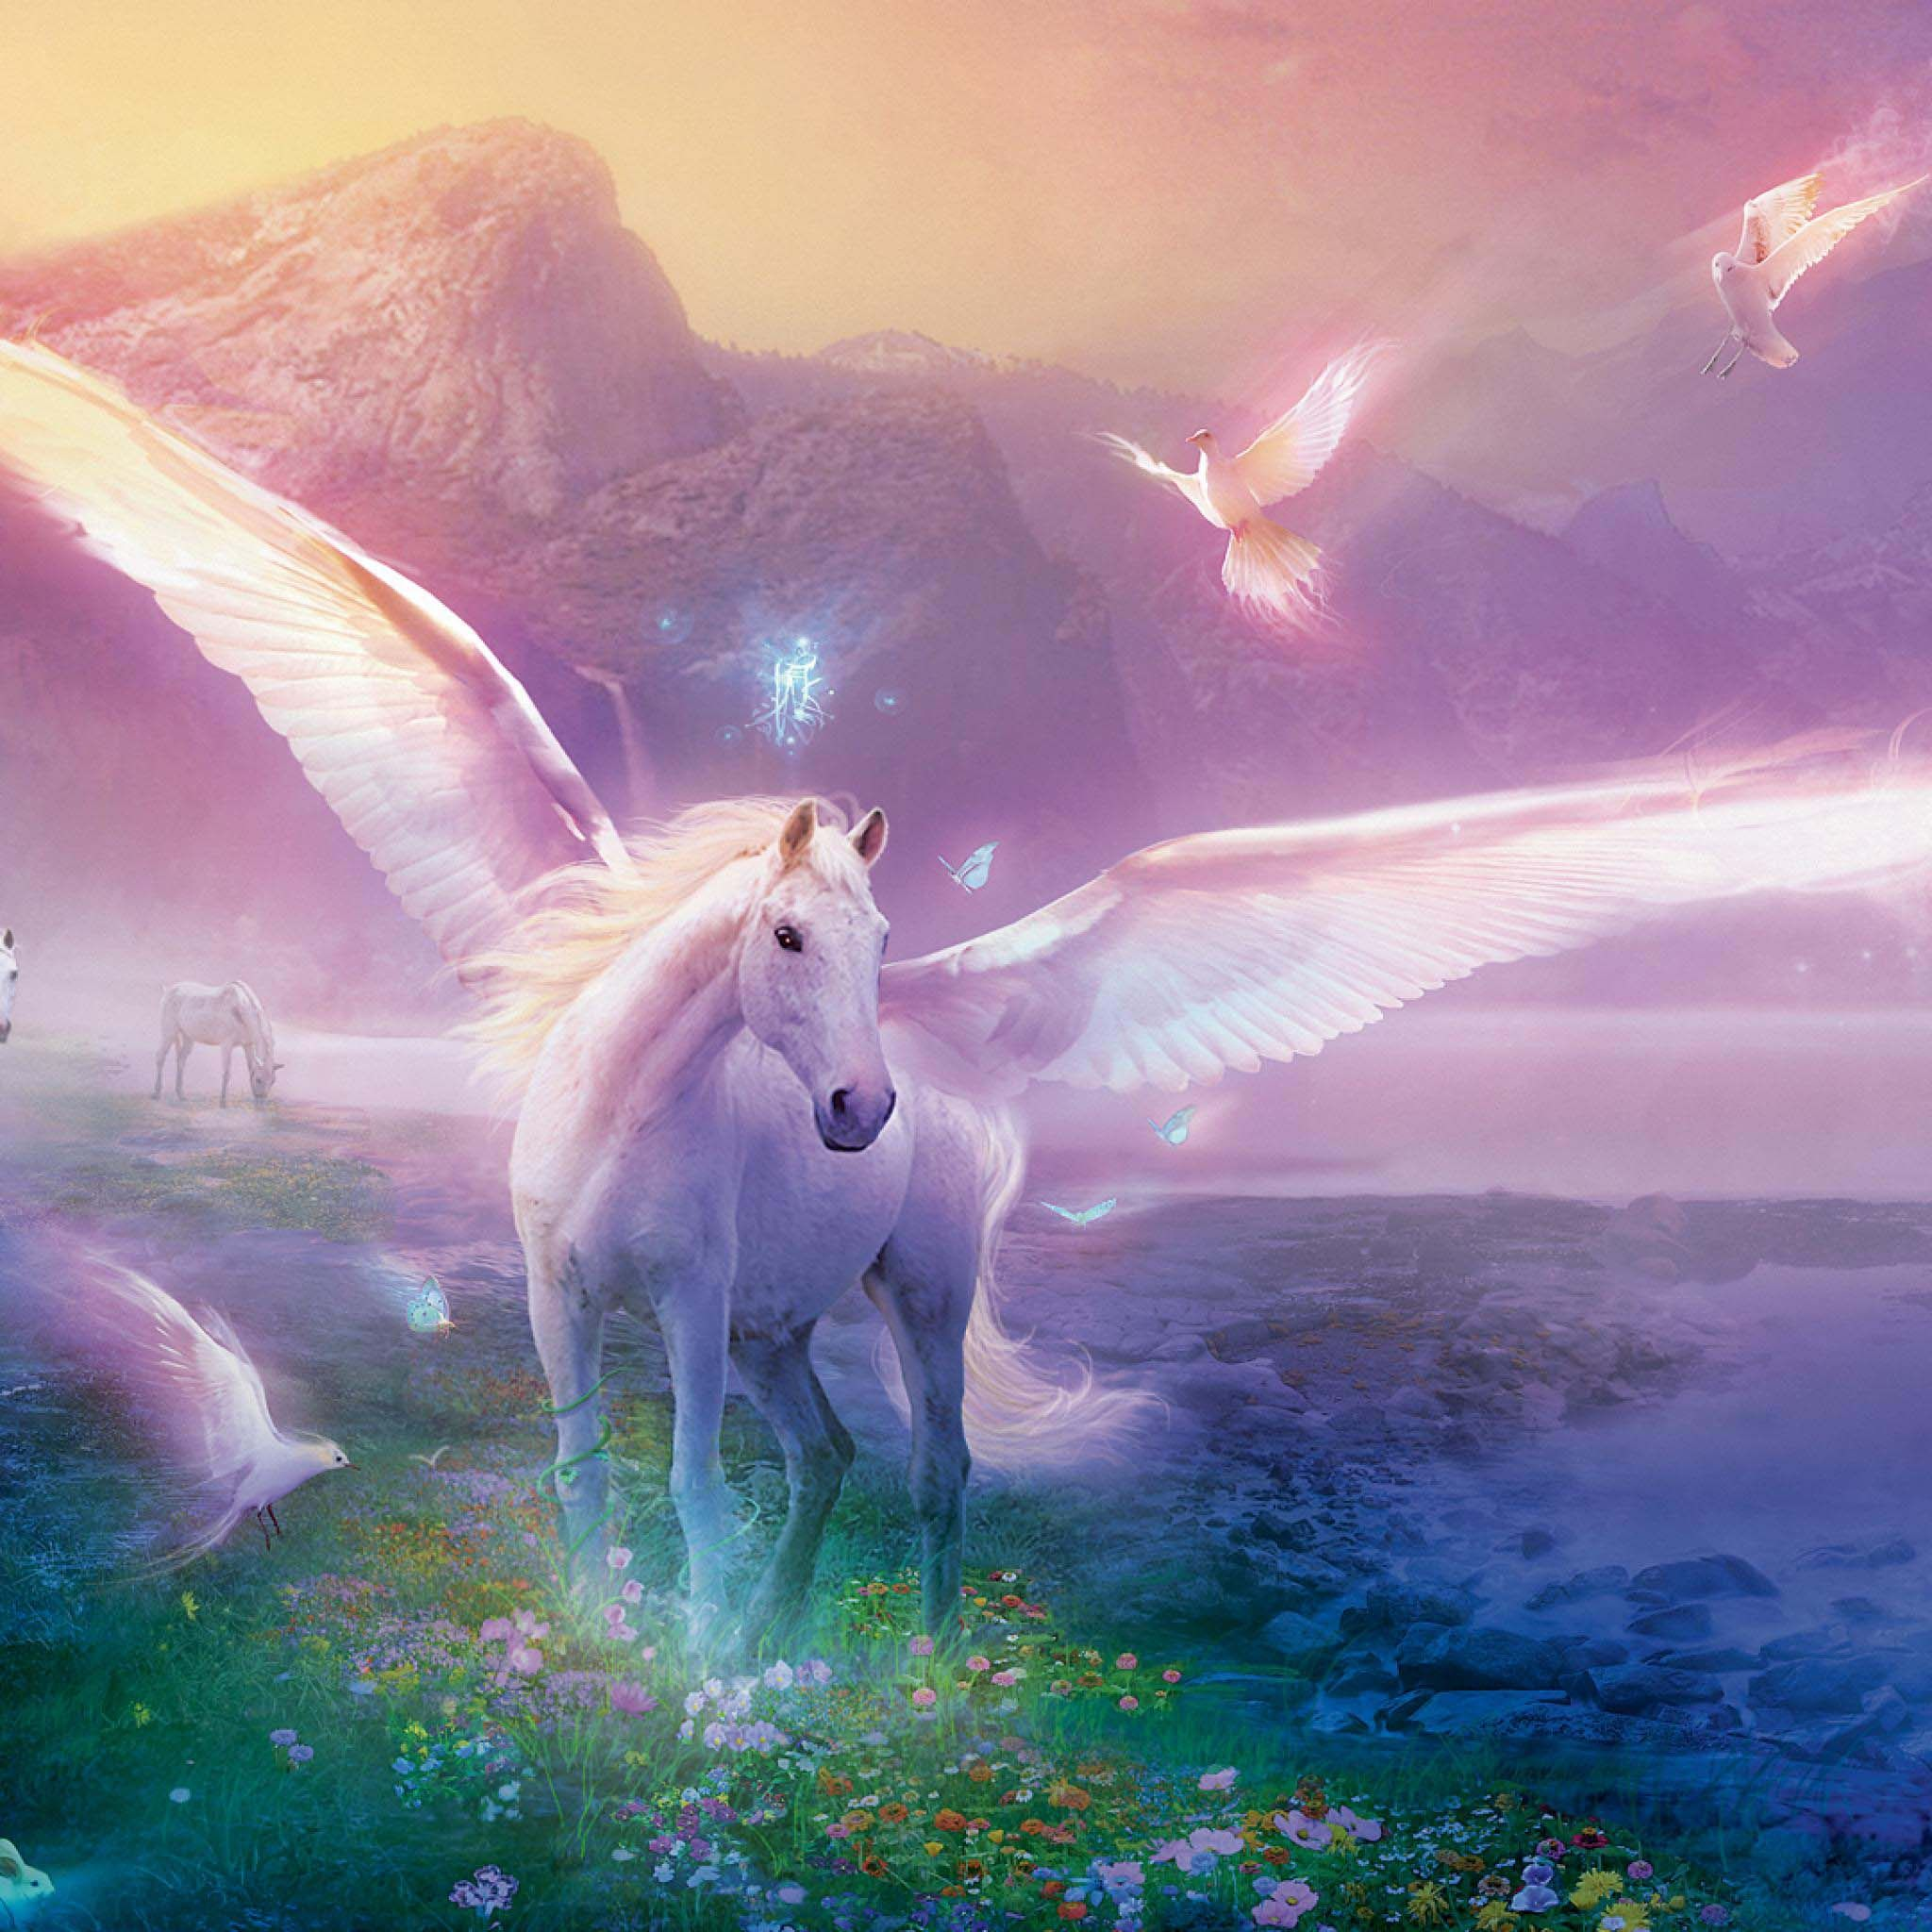 Wallpaper Hd Unicorn Fantasy Mythical Creatures Fantasy Horses